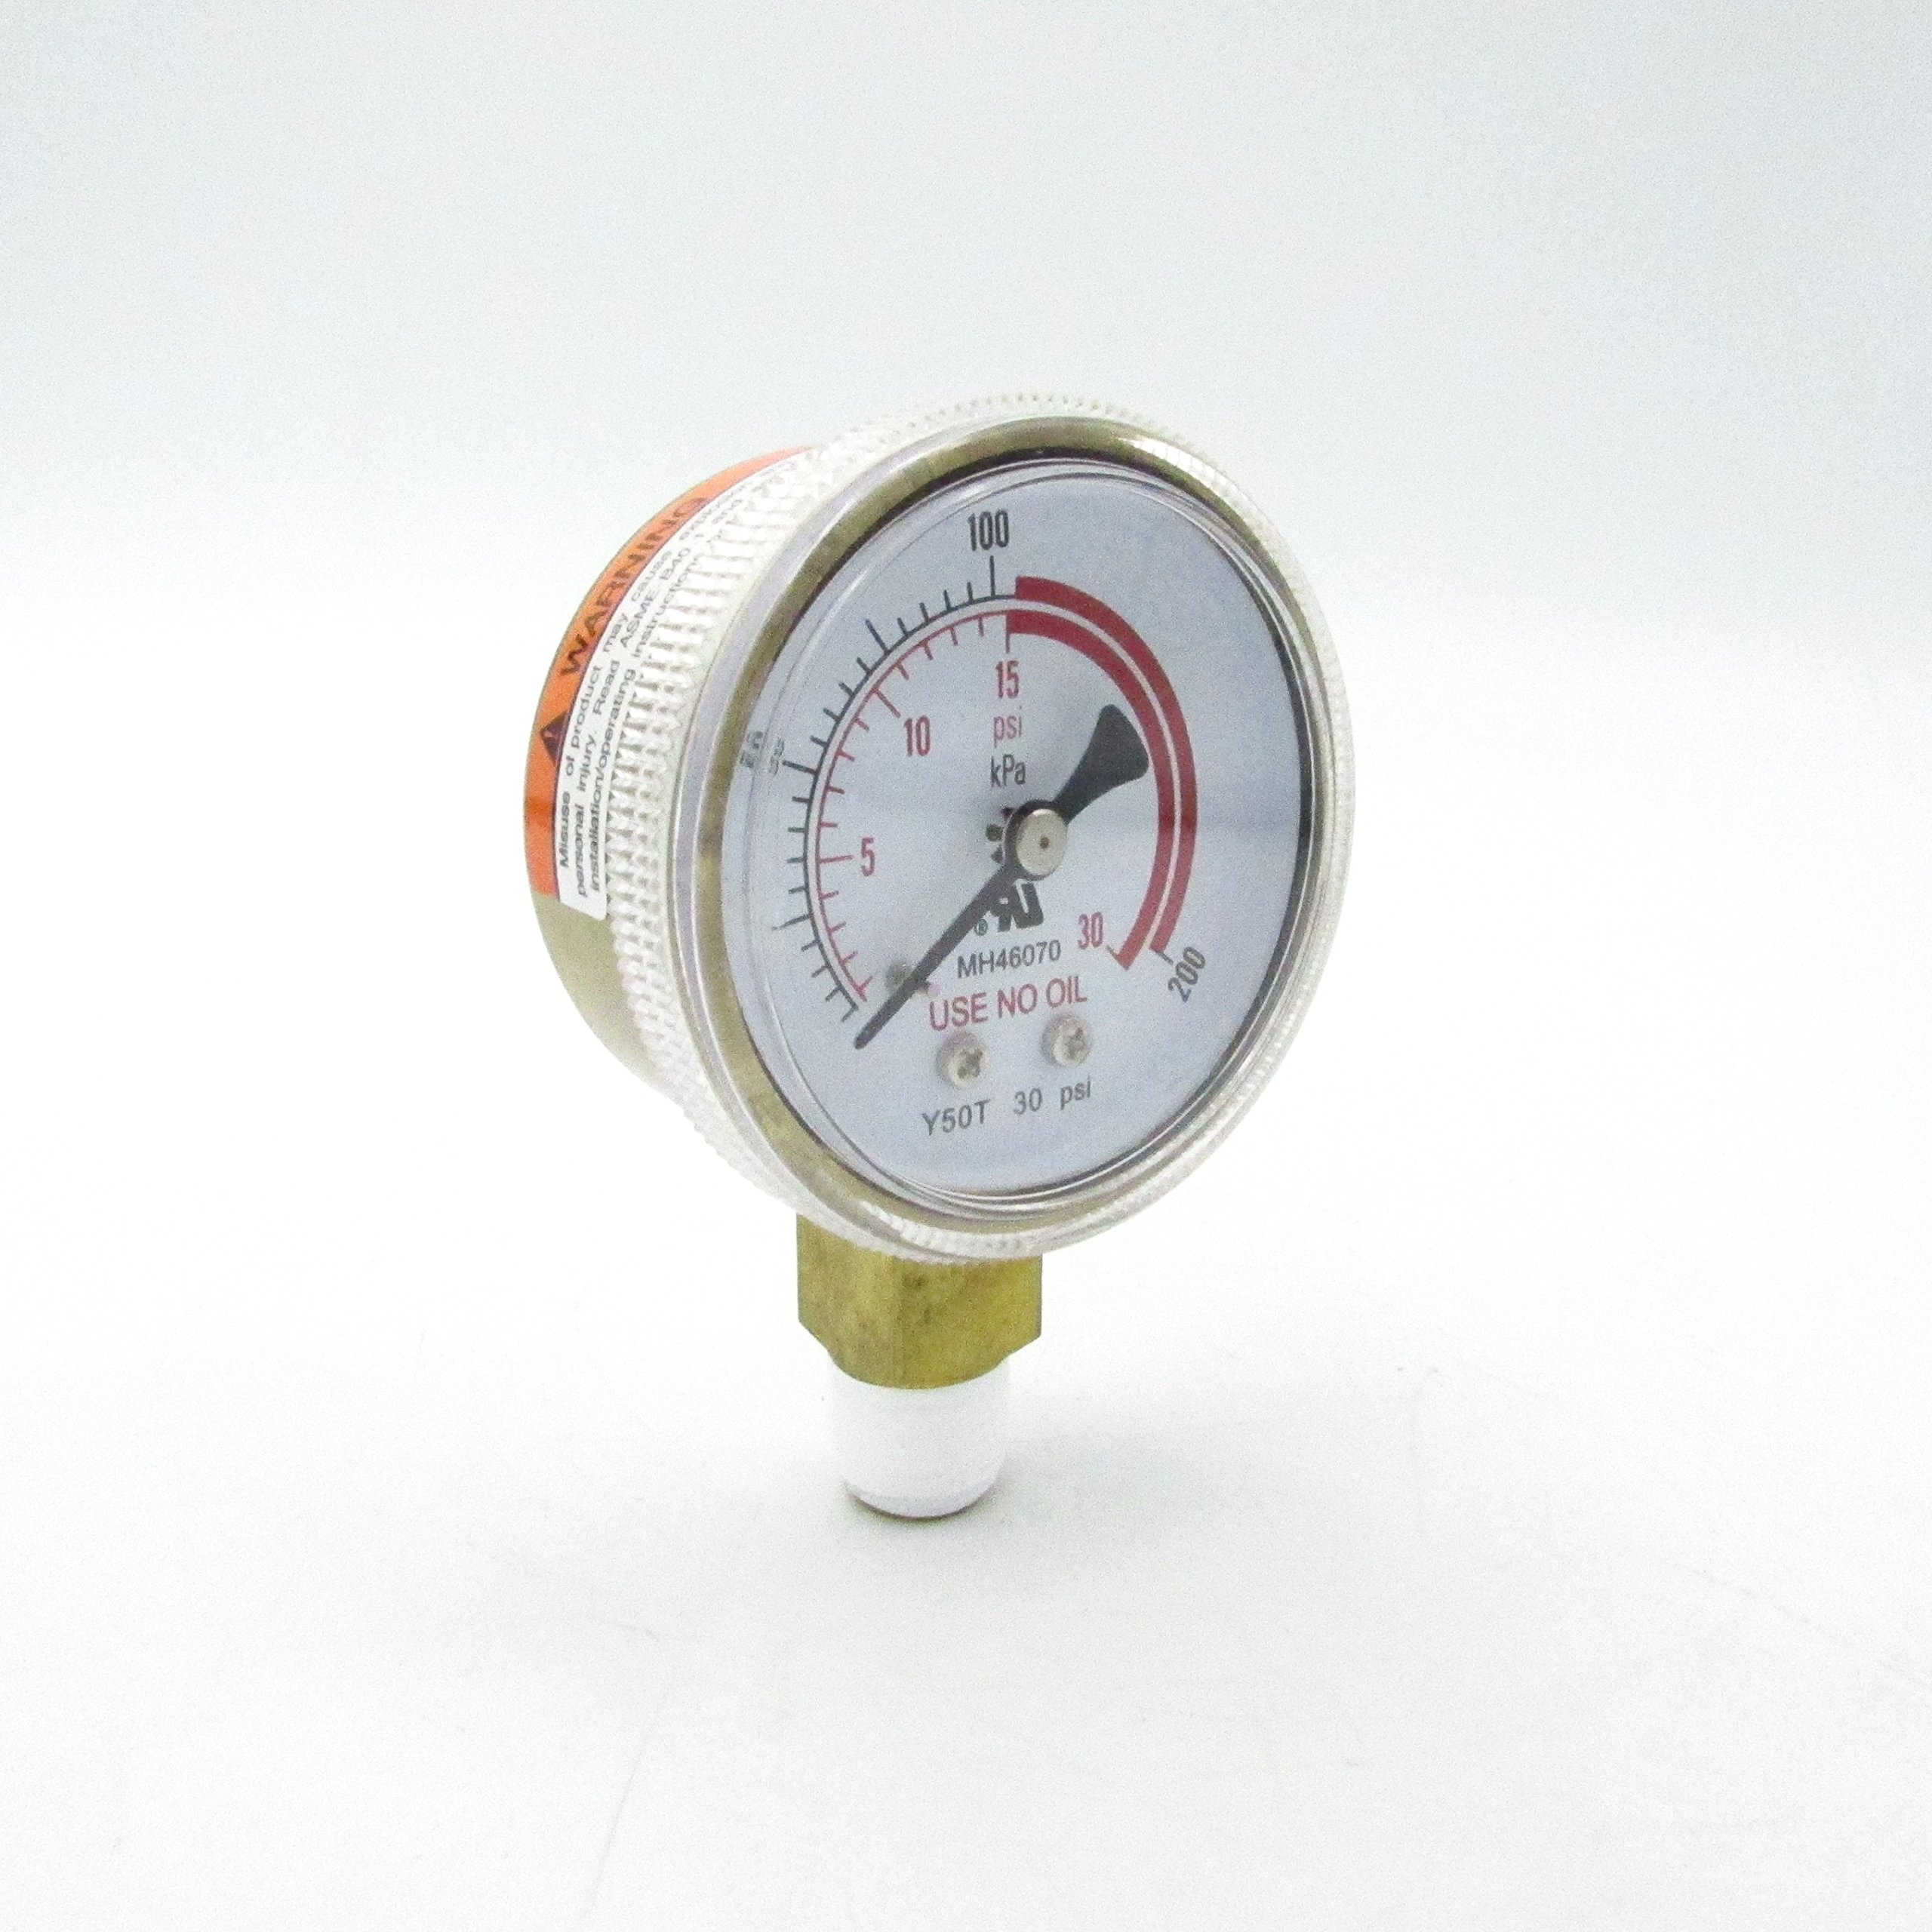 YAGI MH46070 Gold Plated Steel Pressure Gauge For Compressed Gas Regulators 30PSI